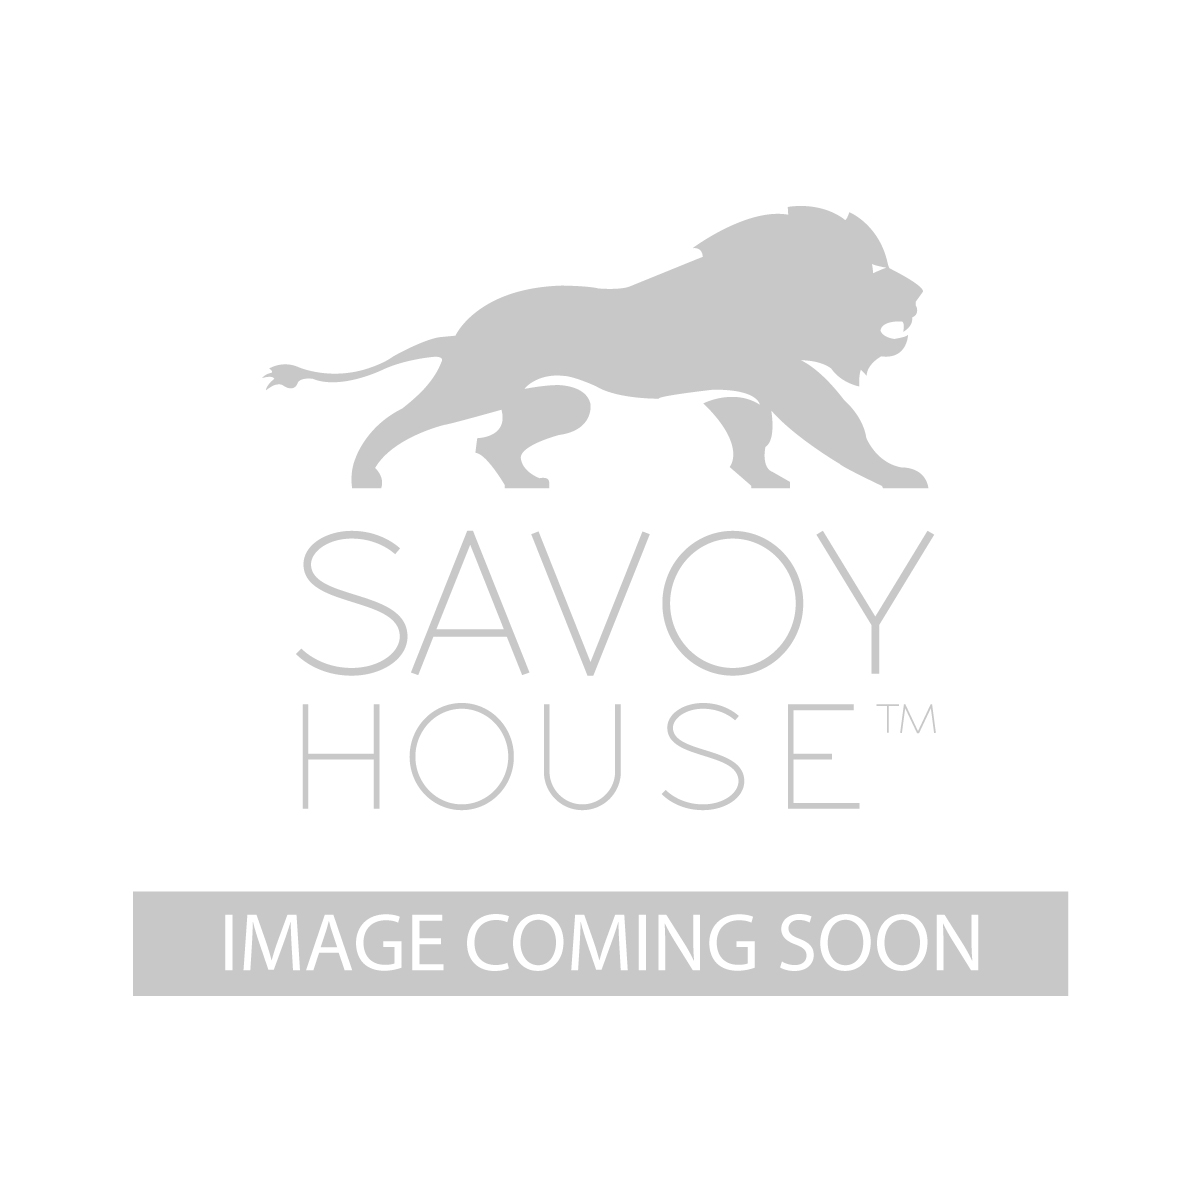 50 950 CA 13 Circulaire Ceiling Fan by Savoy House